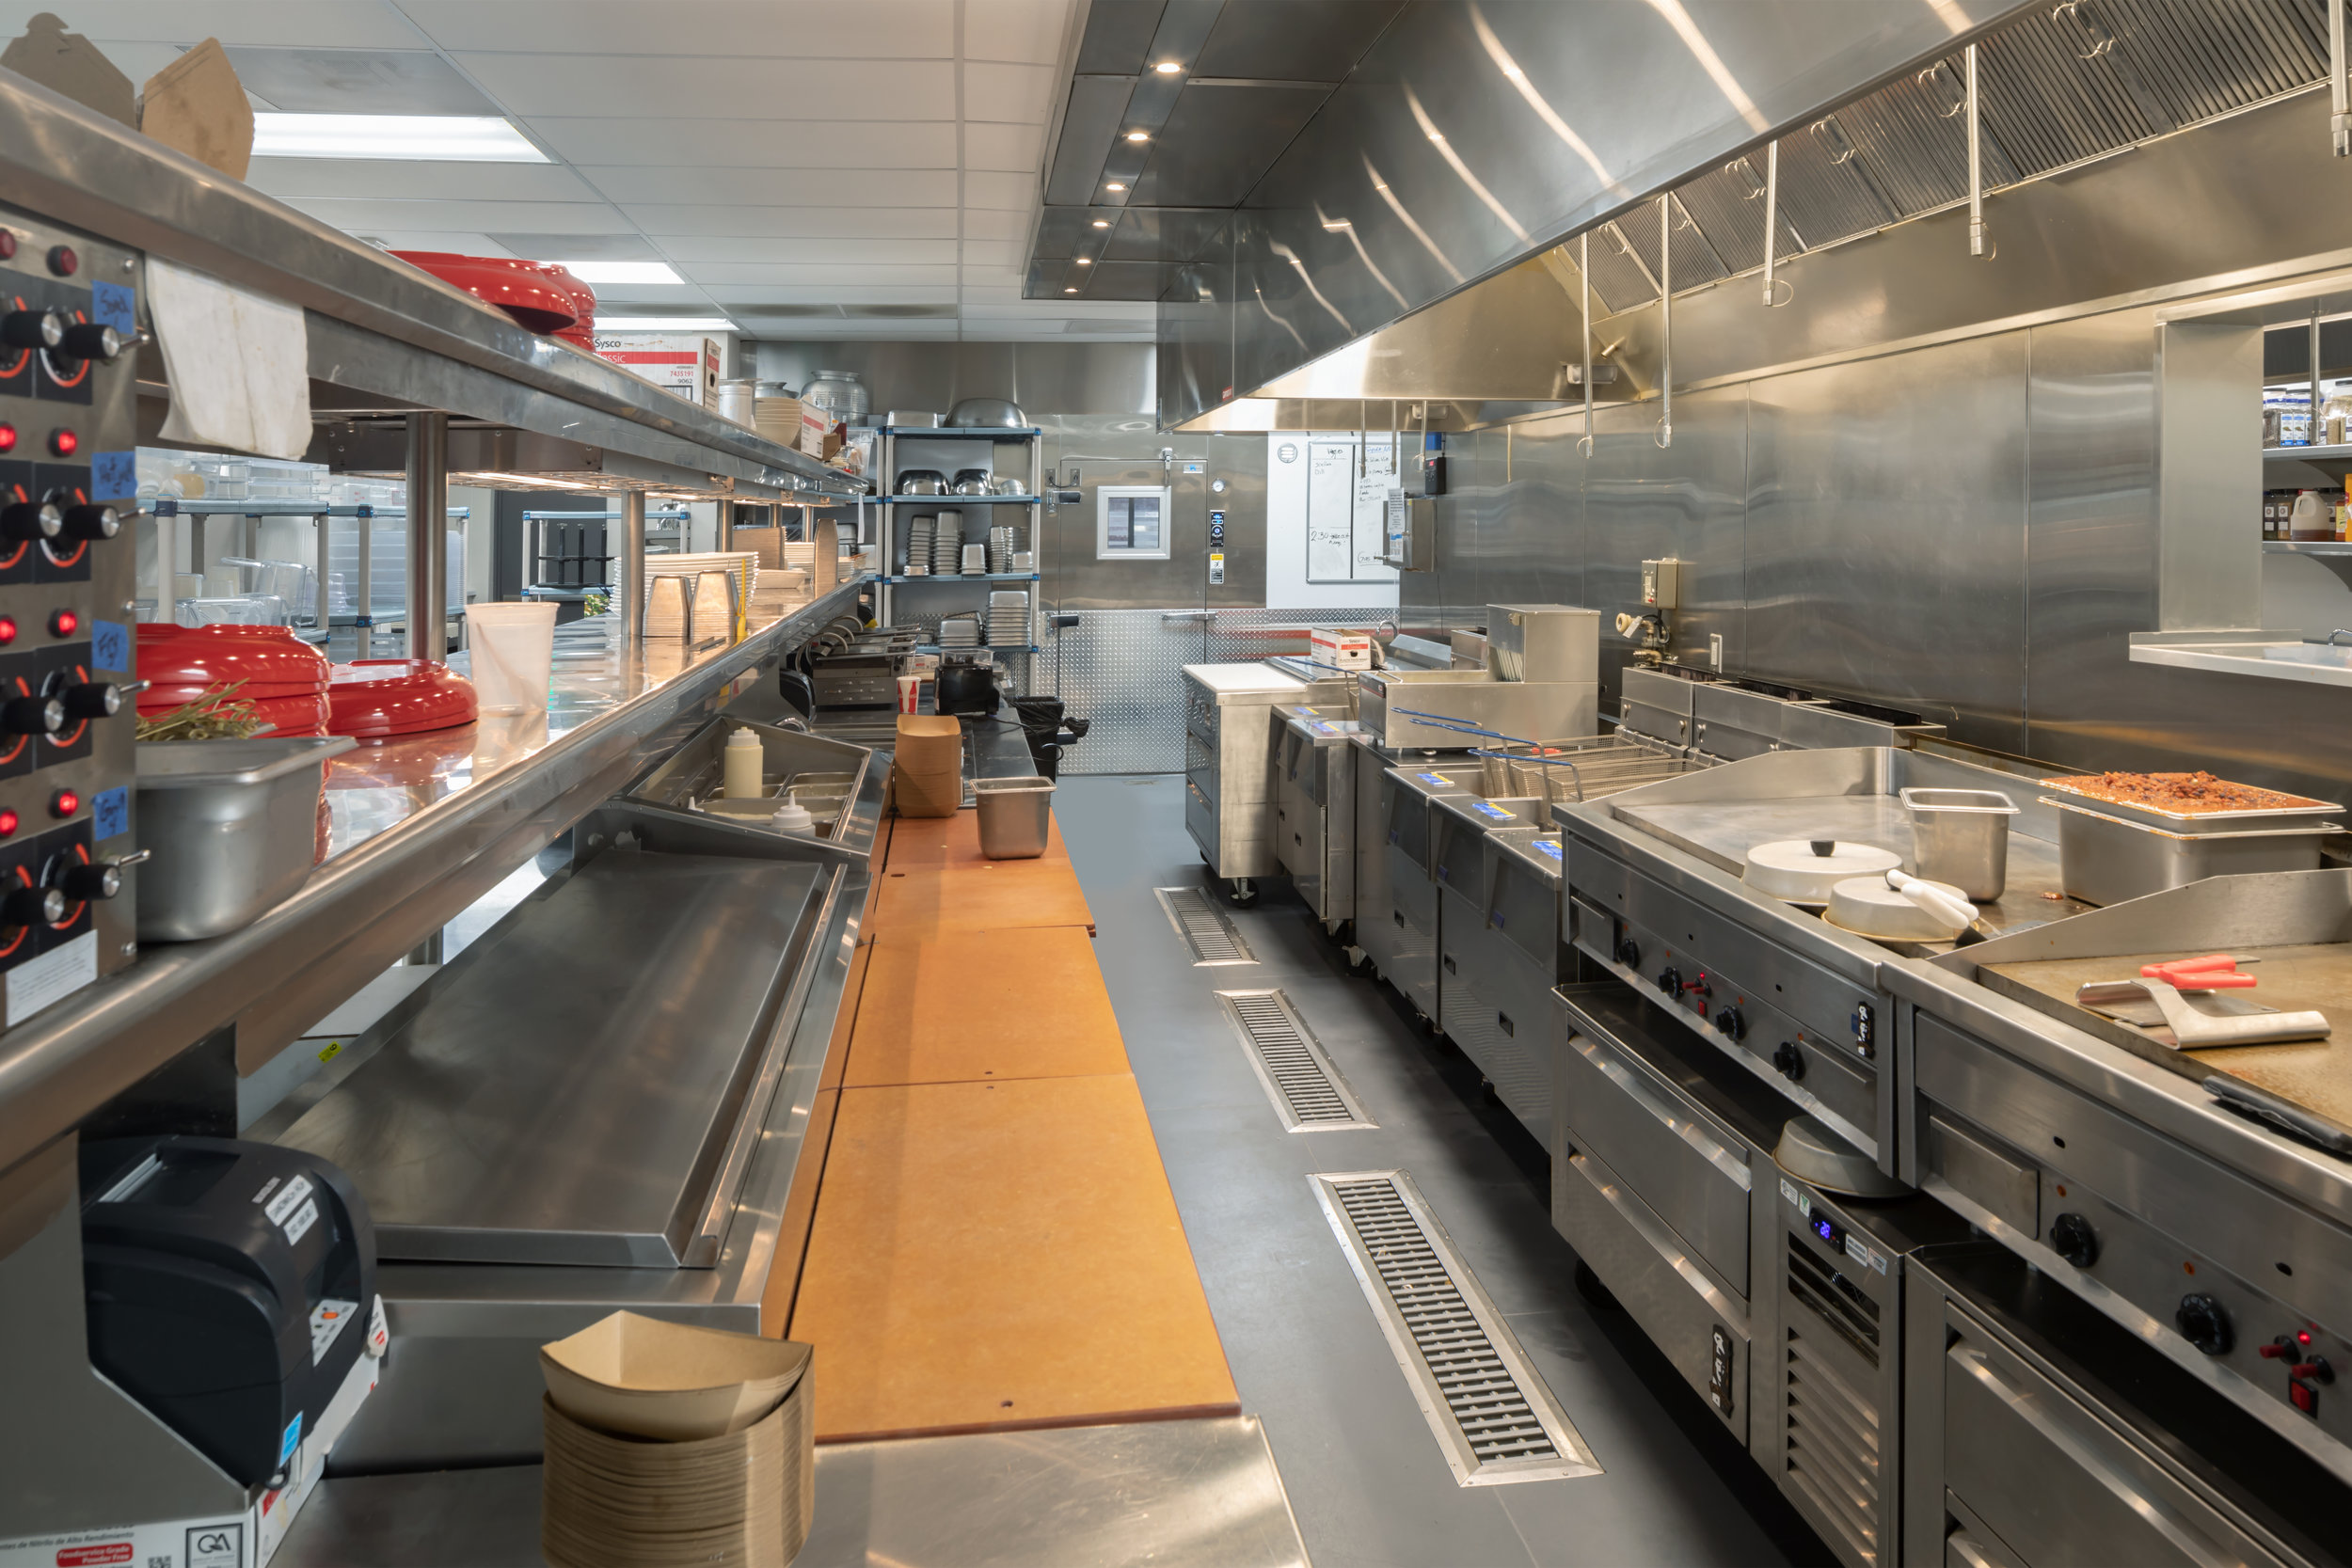 ADW-Entertainment-Frankie's-Fun-Park-Huntersville-NC-Interior-Kitchen.jpg